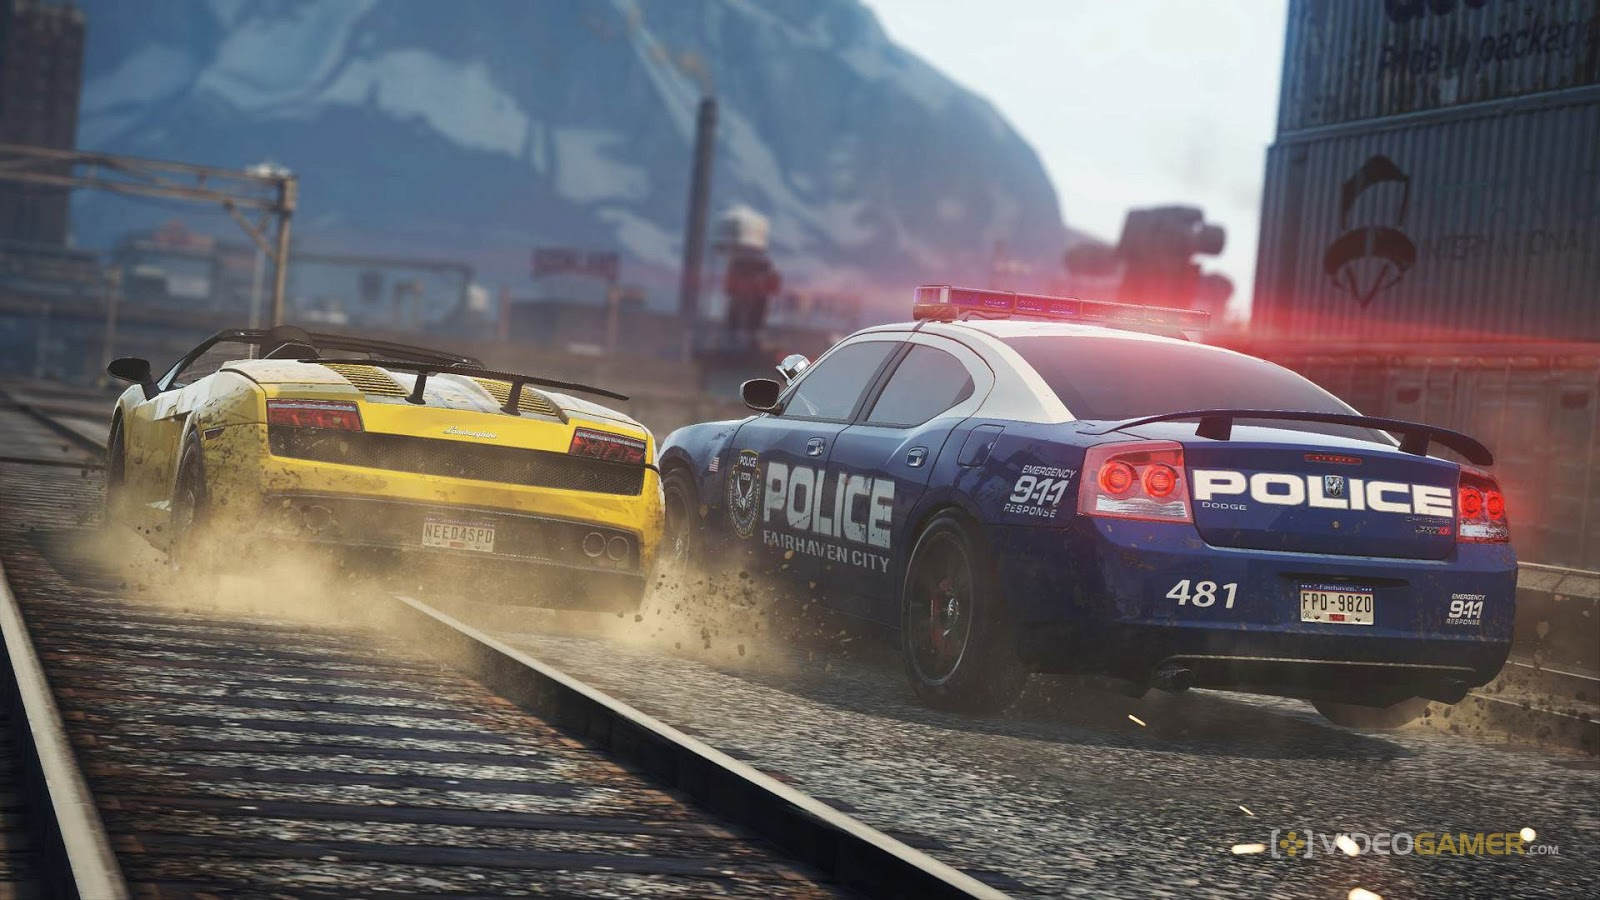 Mundo juegos gratis need for speed most wanted 2013 full for Juego nfs most wanted